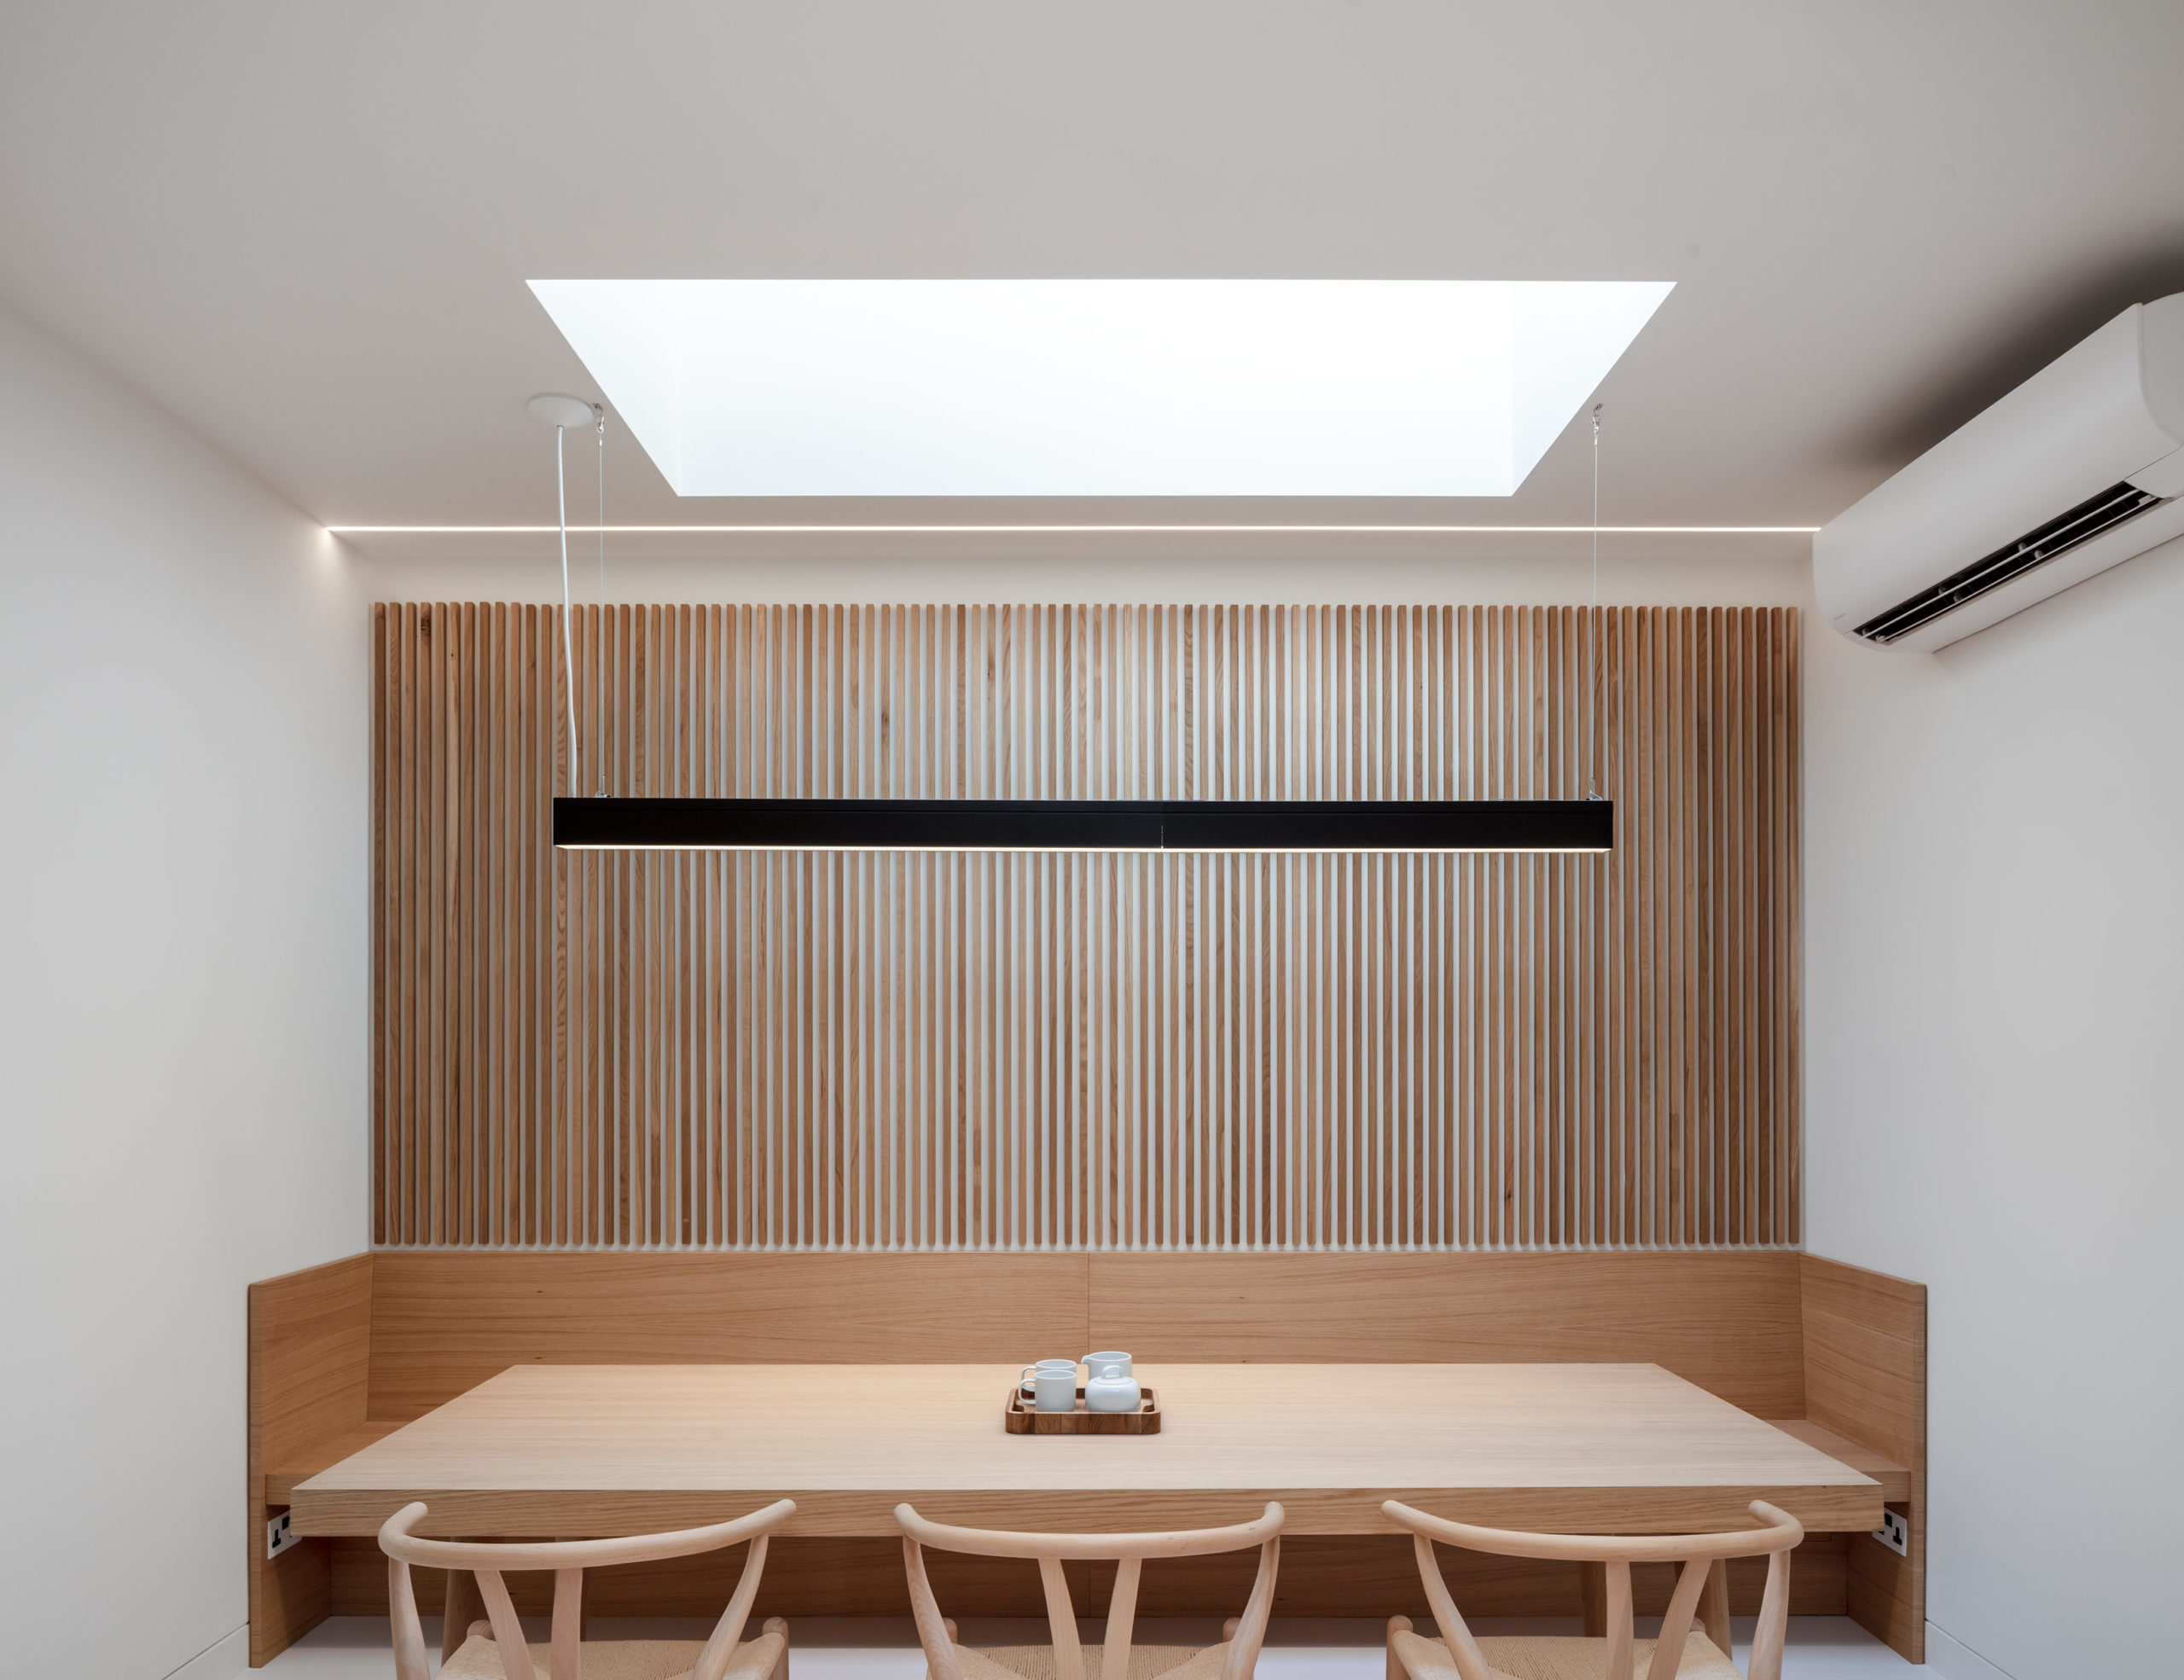 Dining and meeting area with timber panelling and classic, modernist furniture.